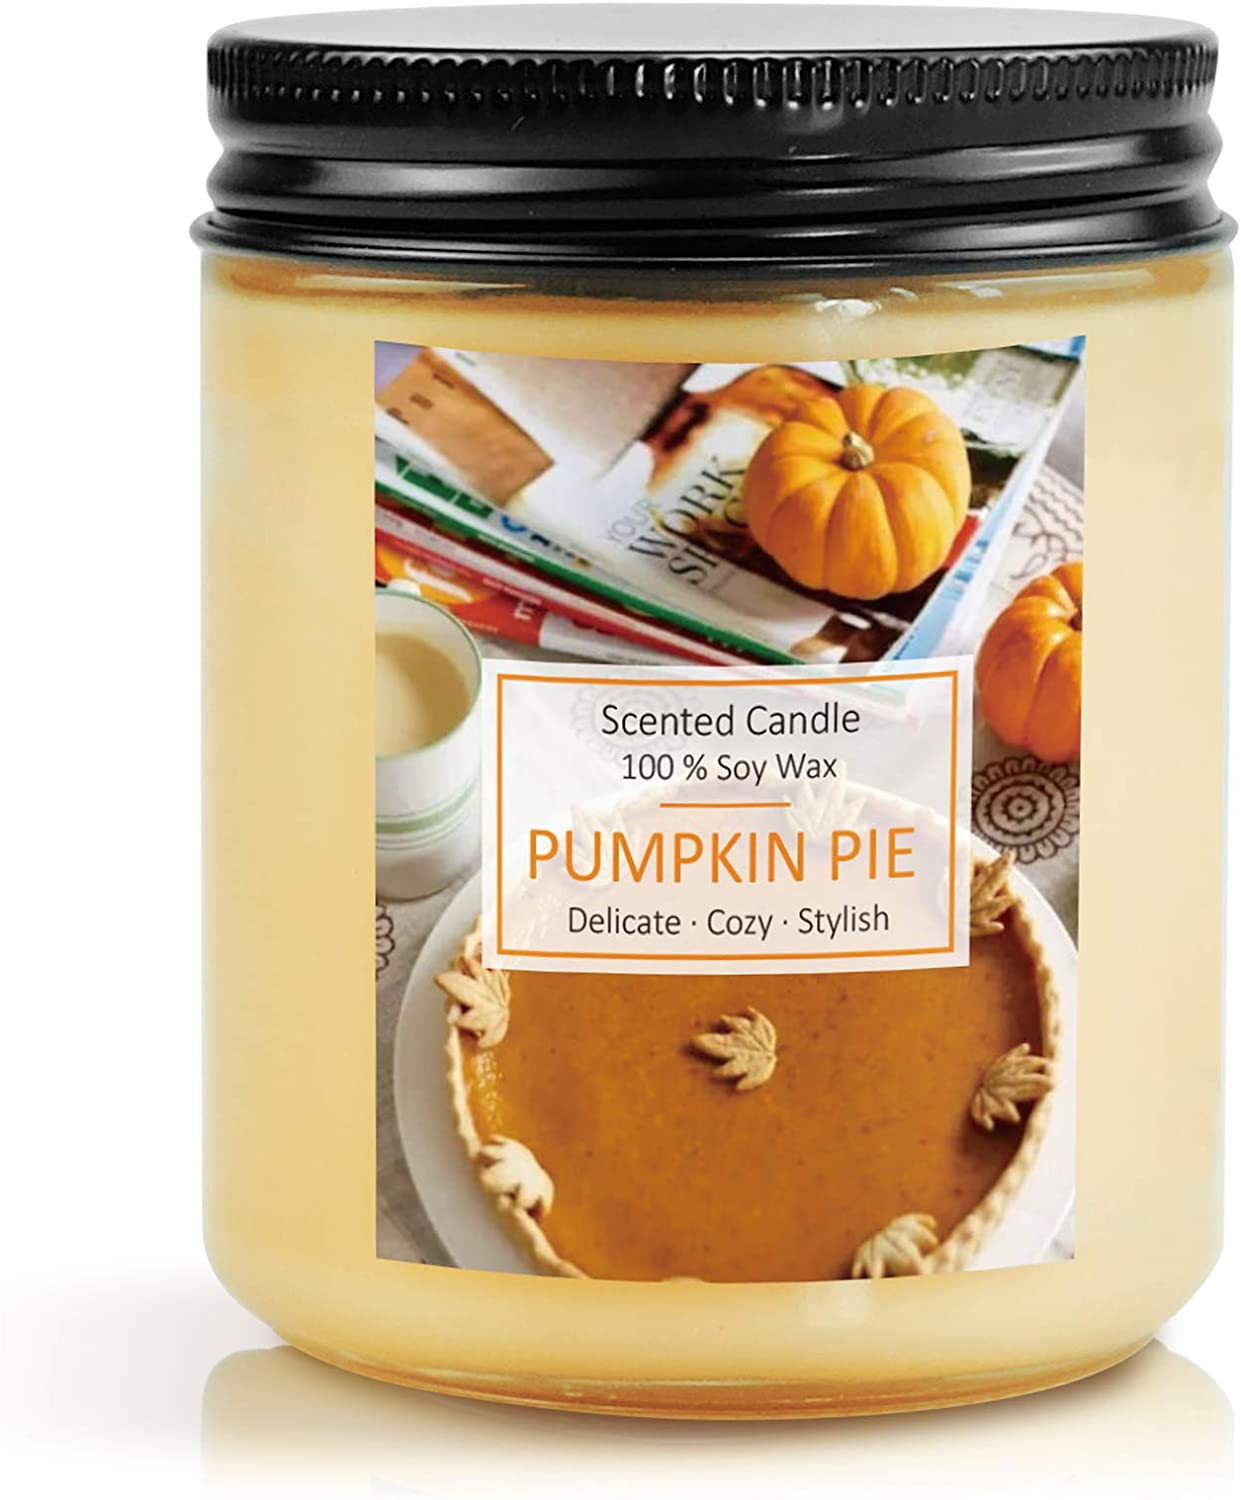 SnailDigit Pumpkin Pie Sweet Fall Scented Candles for Family, Aromatherapy Candles, Soy Wax Candles for Home, Friends